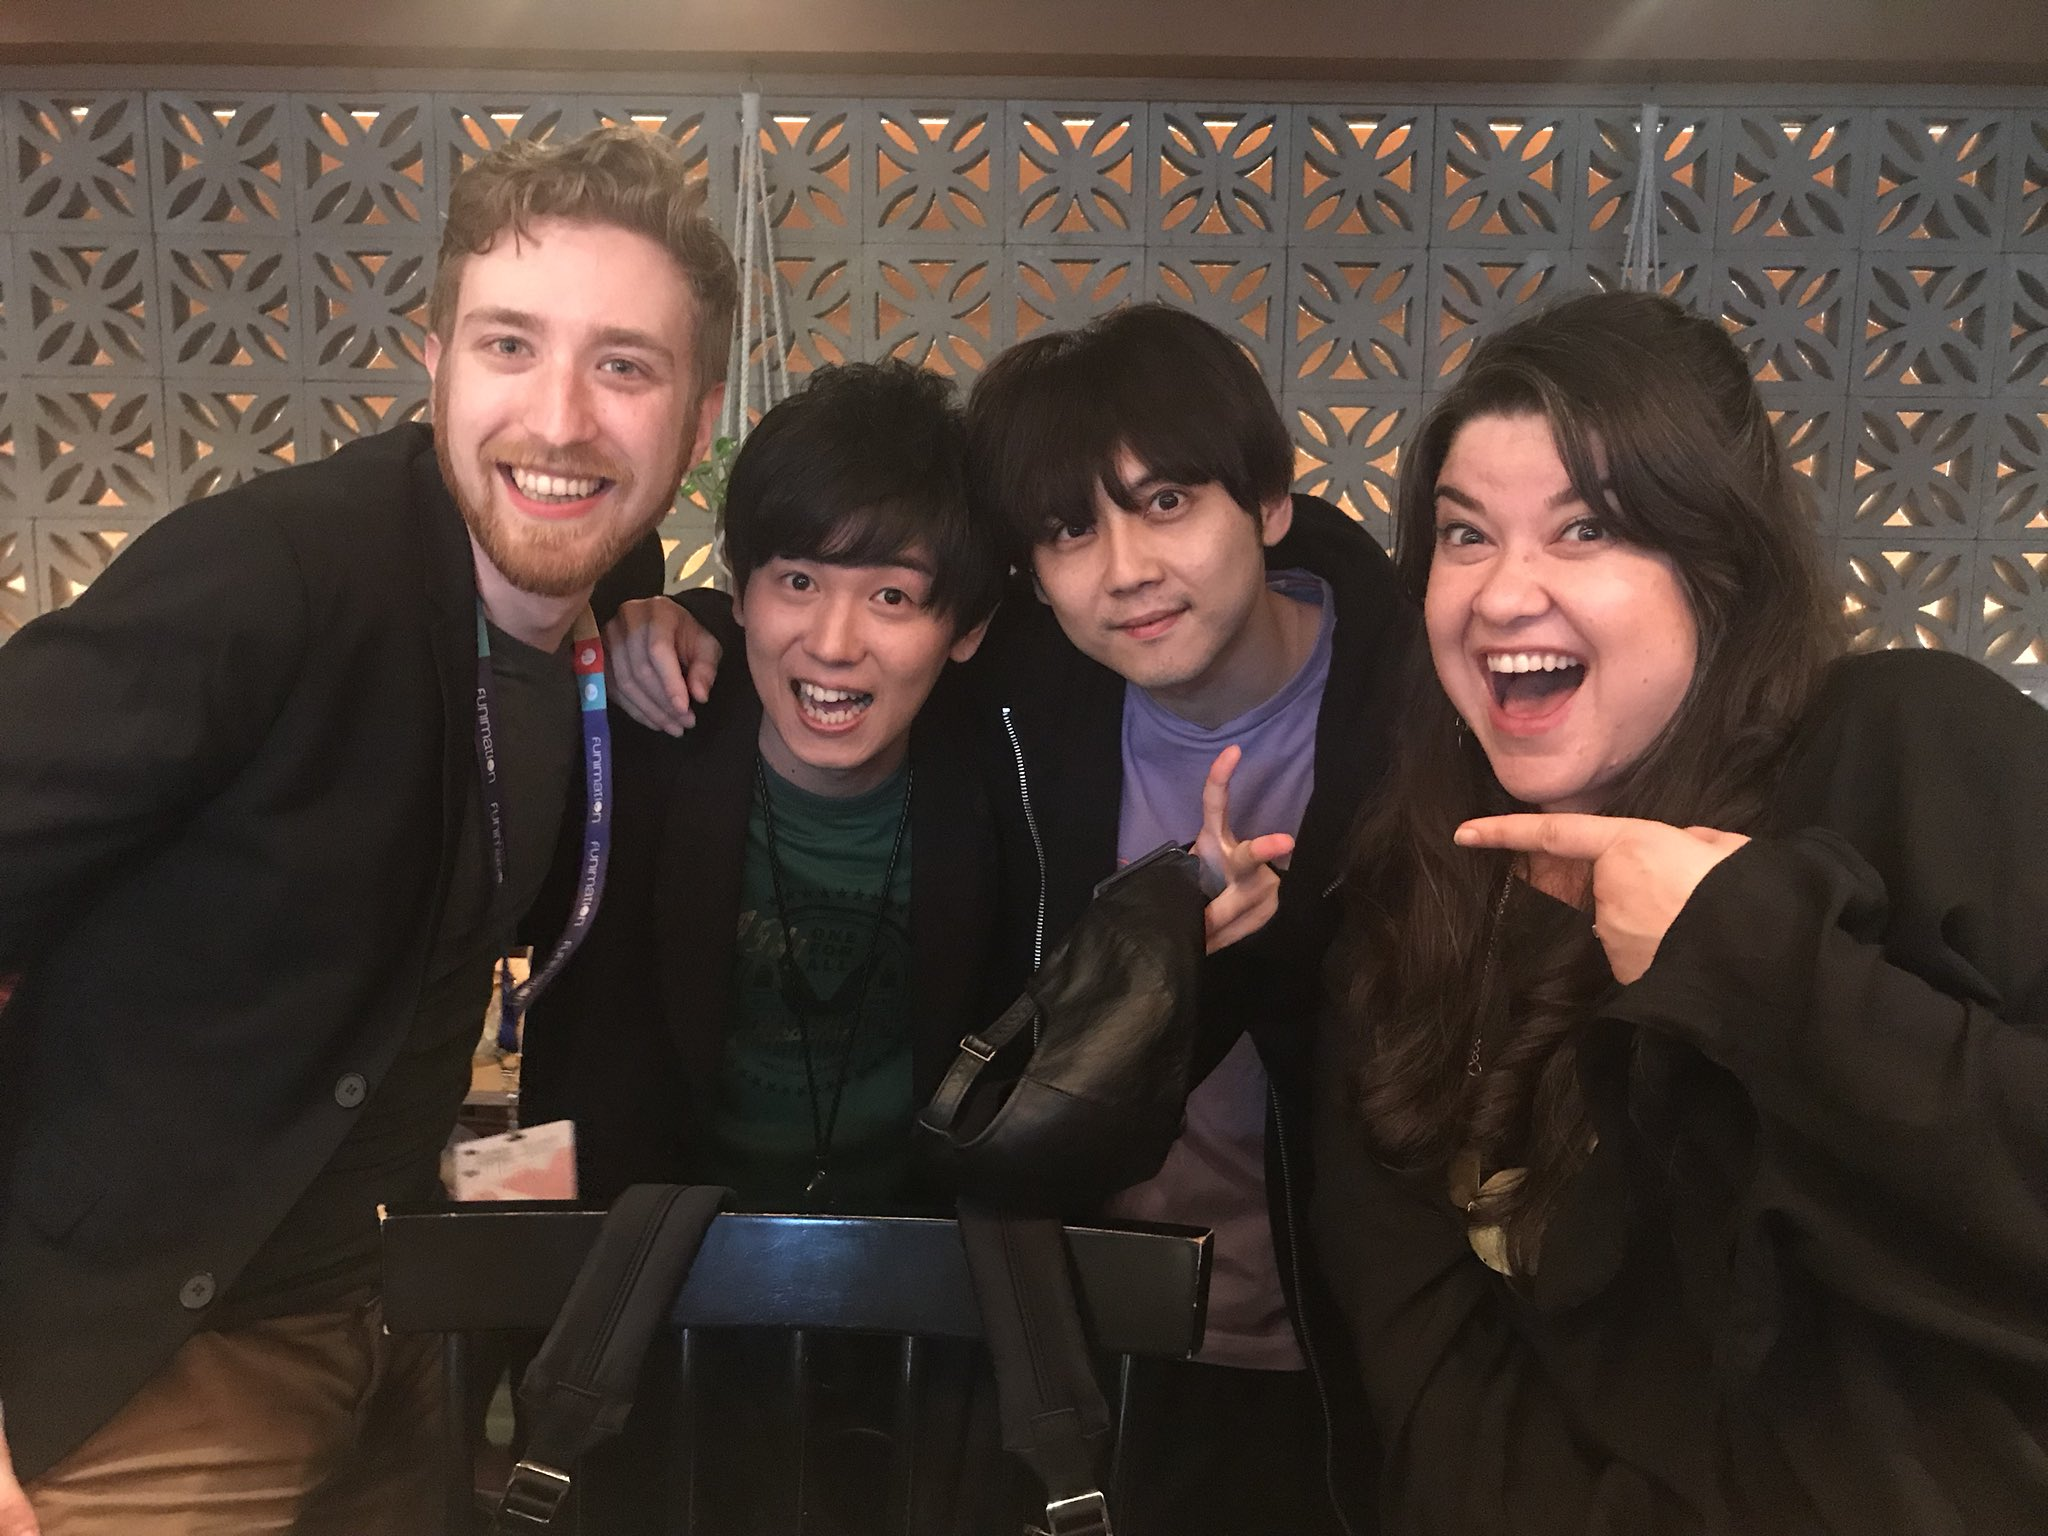 Colleen Clinkenbeard On Twitter This Is Justinbriner Daiki Yamashita Izuku Yuki Kaji Todoroki And Me Animeexpo Funimation Myheroacademia Https T Co Pzrhdmidbu